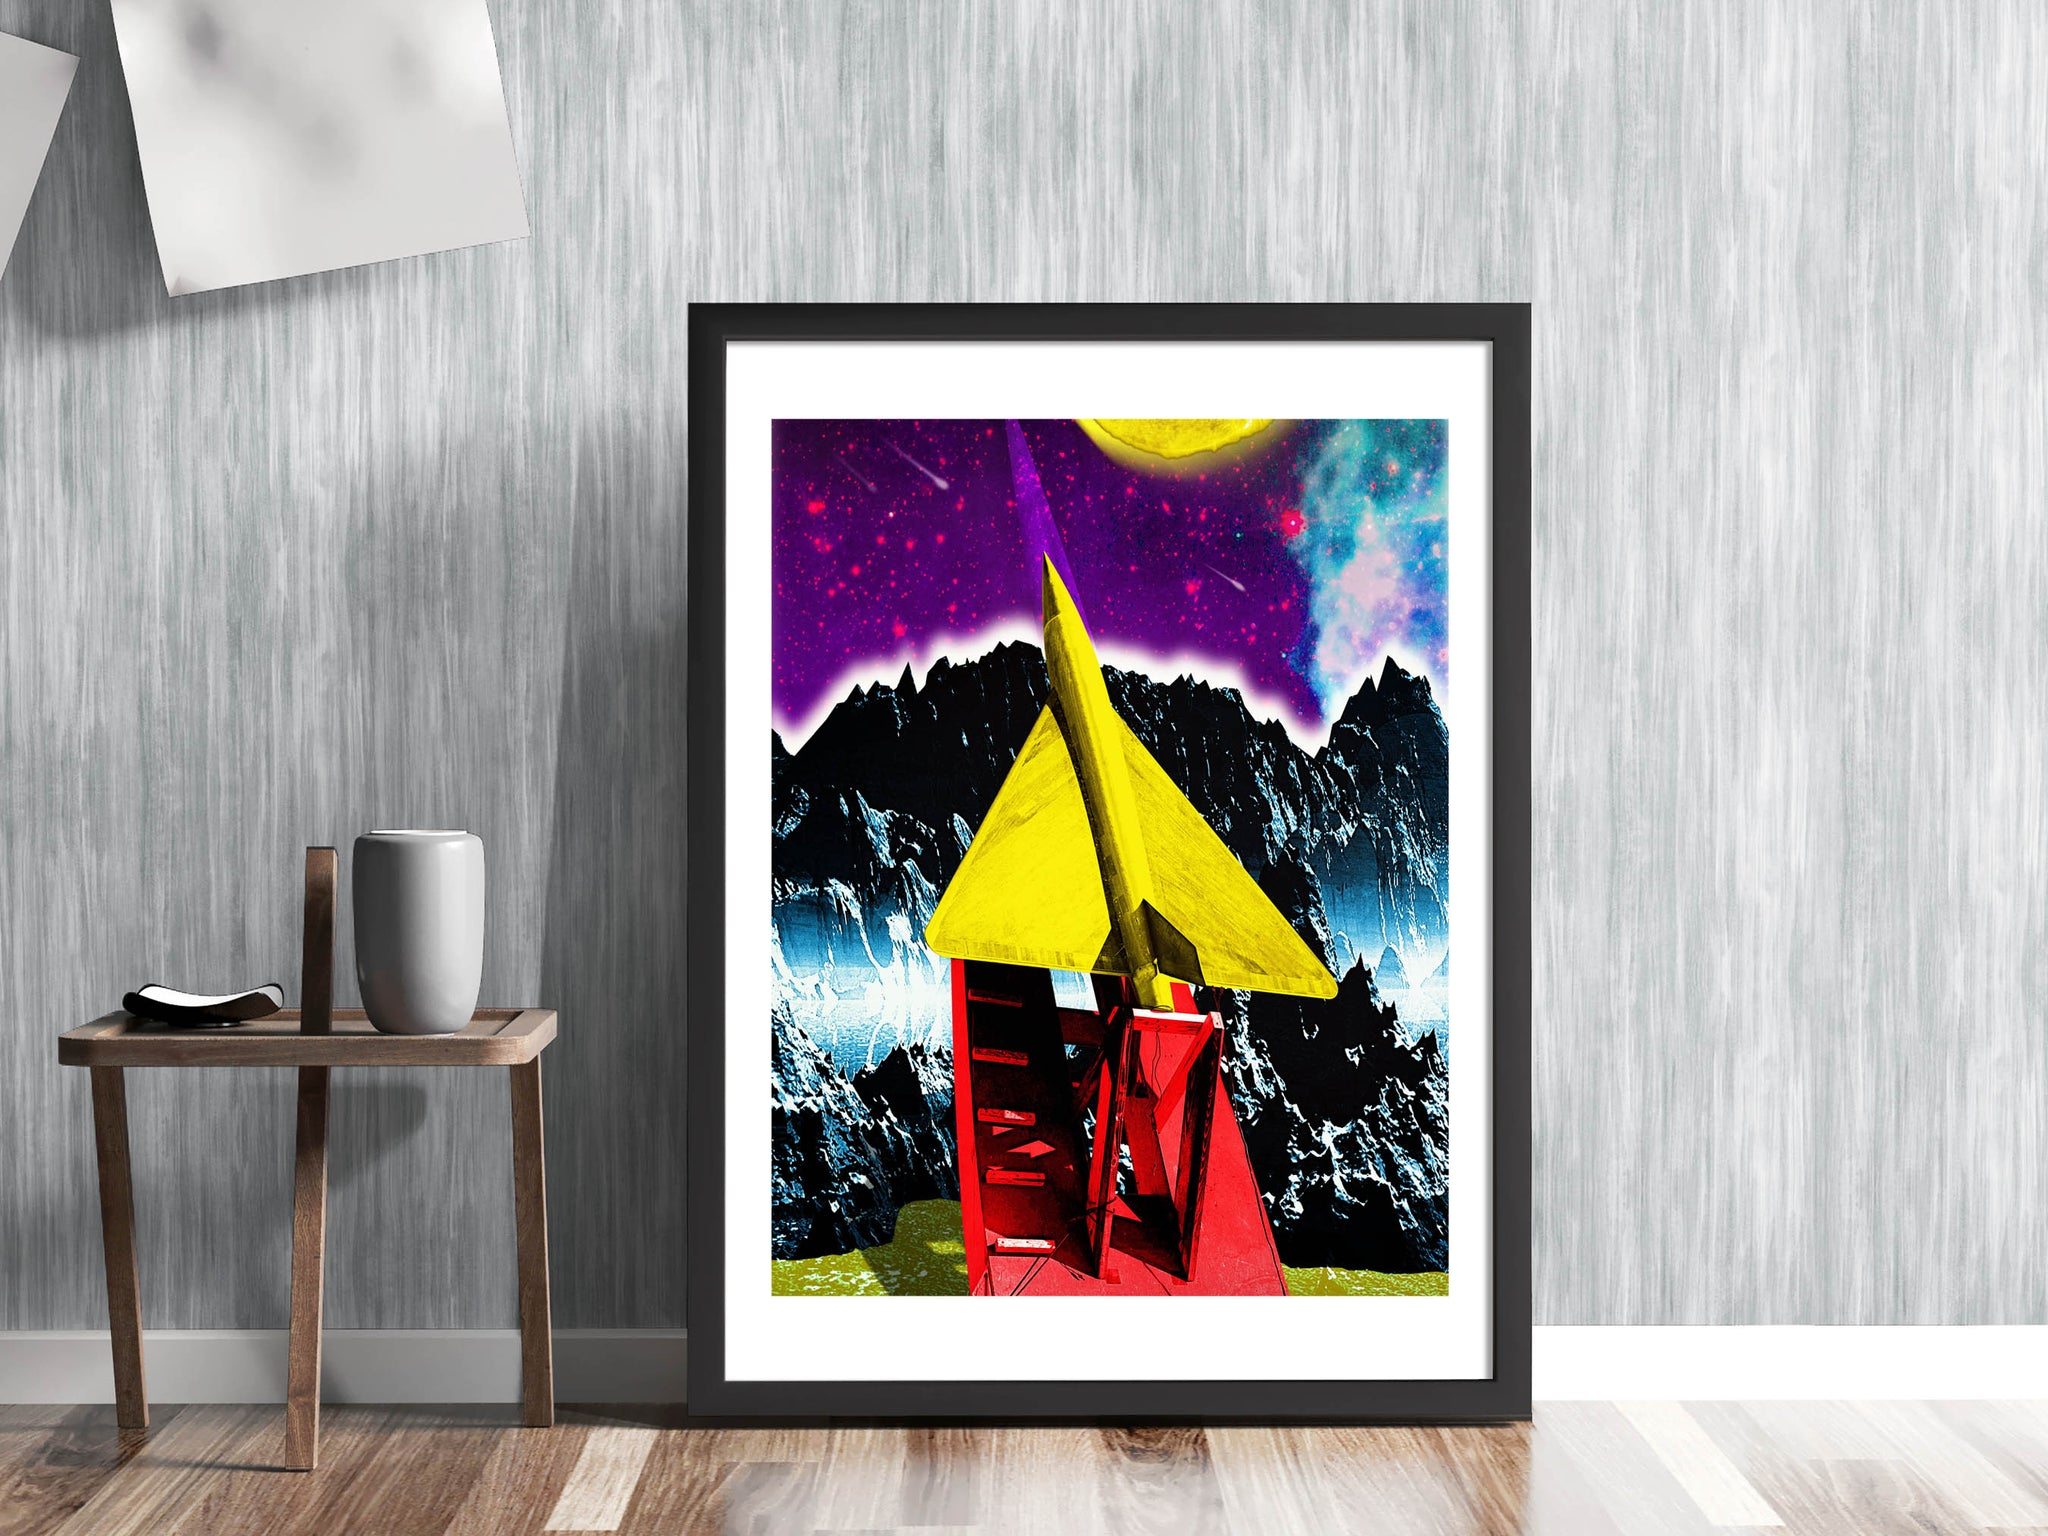 Rocket To The Stars retro spaceship mid century fifties art print - 'Unframed'